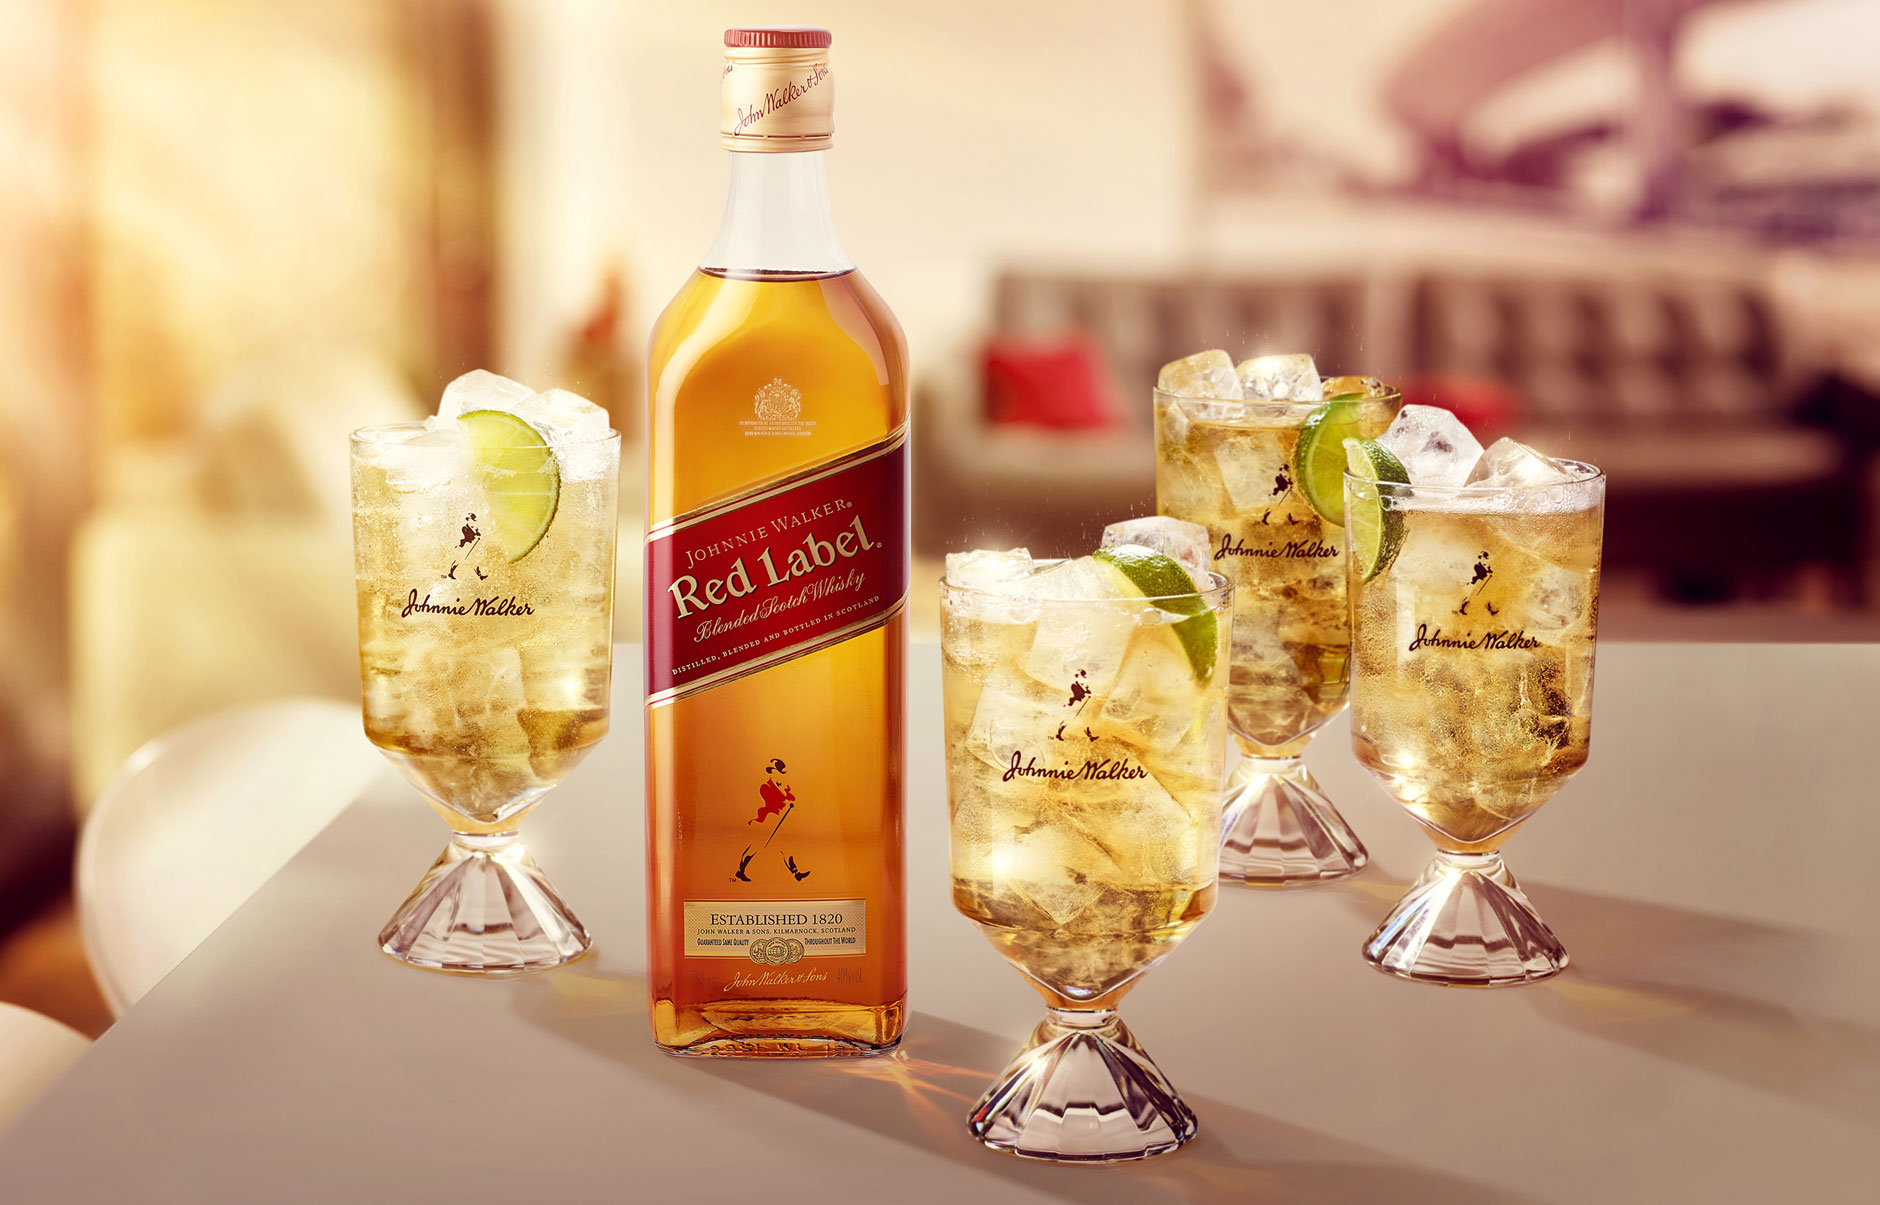 Johnnie_Walker_red